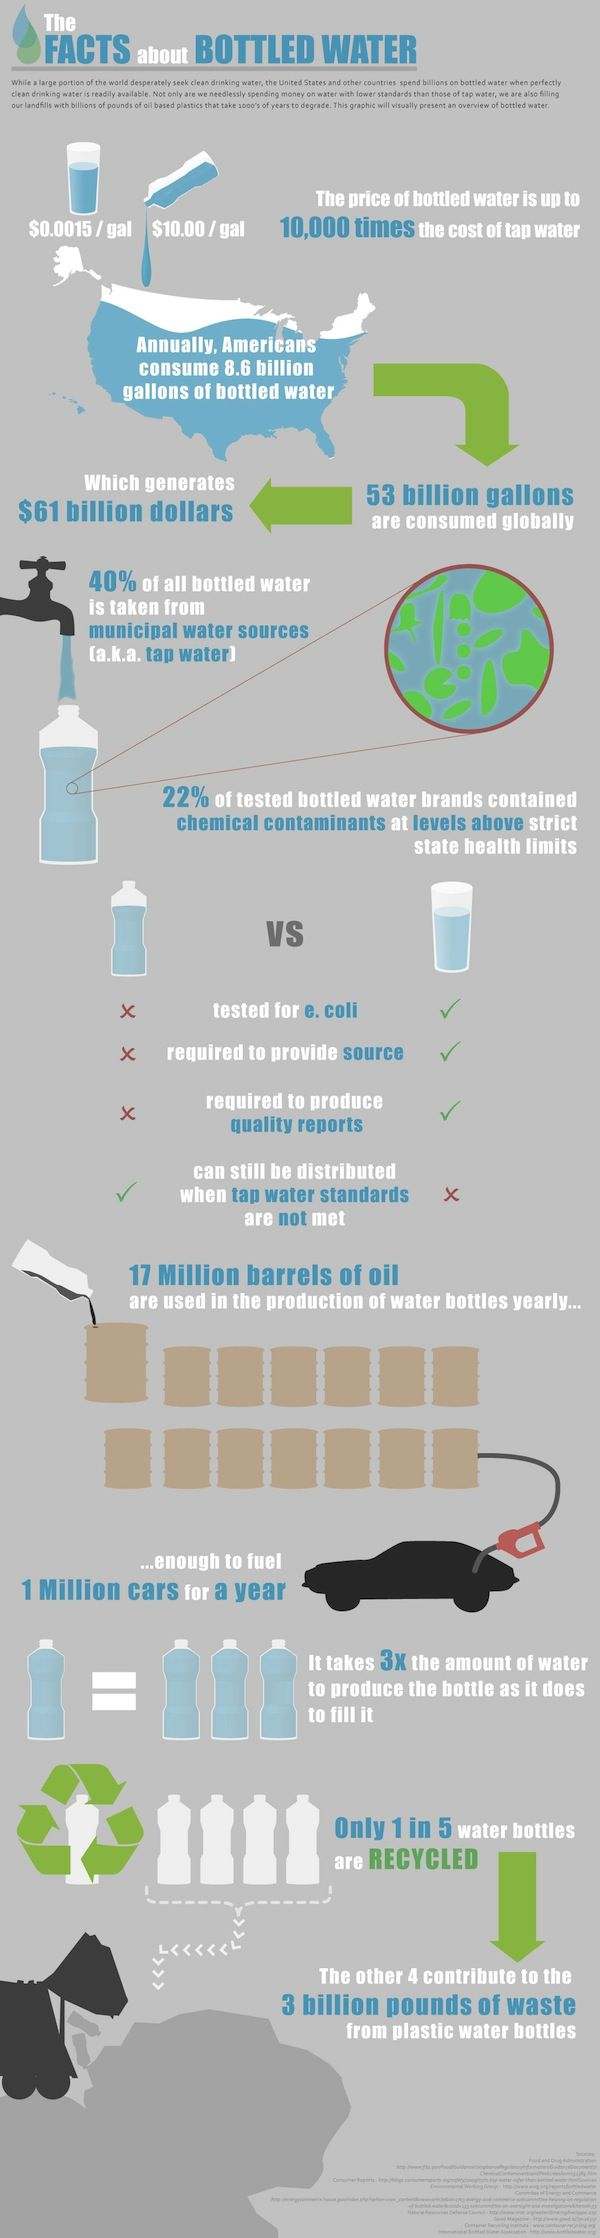 price of bottled water is up to 10,000 the cost of tap water.  40% of all bottled water is taken from tap water.  22% of this is contaminated with chemicals at levels above state health limits.  we could fuel a million cars for a year in the oil it takes to produce a yearly supply of plastic bottles, (17 million barrels of oil)